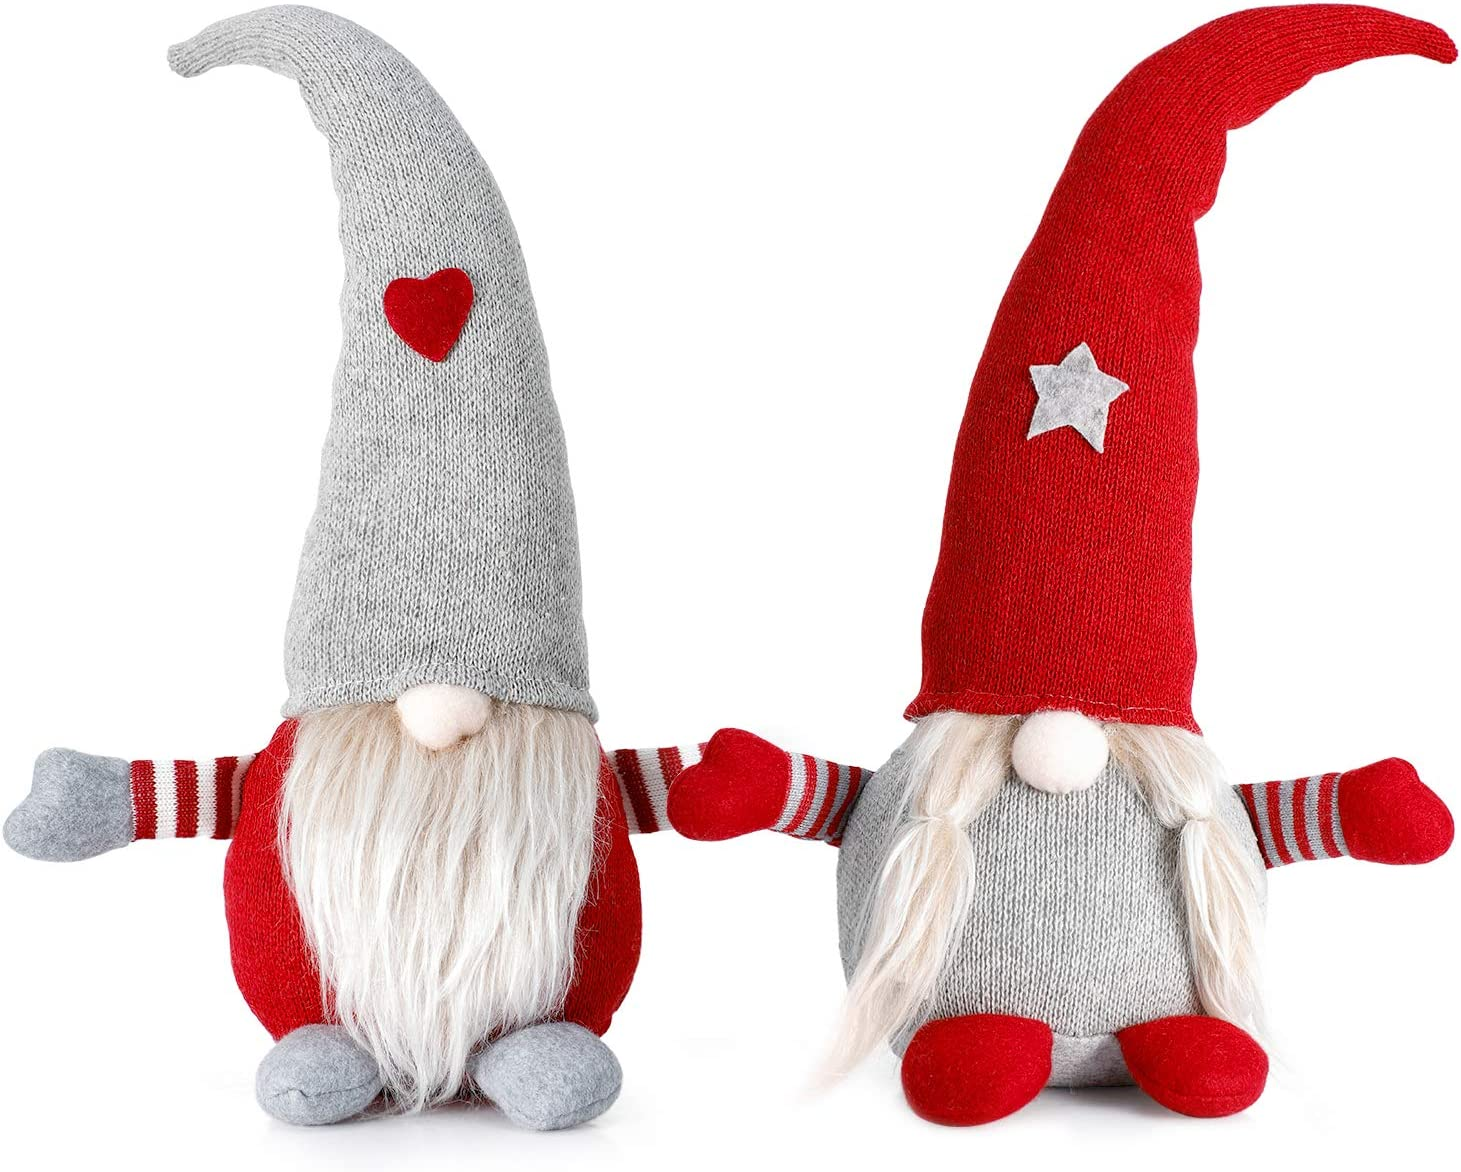 Ohuhu Christmas Gnomes, 2 Pack Gnome Christmas Decorations, Handmade Swedish Gnome Tomte, Nordic Gnome Plush, Stuffed Gnome for Xmas Home Table Ornaments Christmas Decor 16.5 Inch